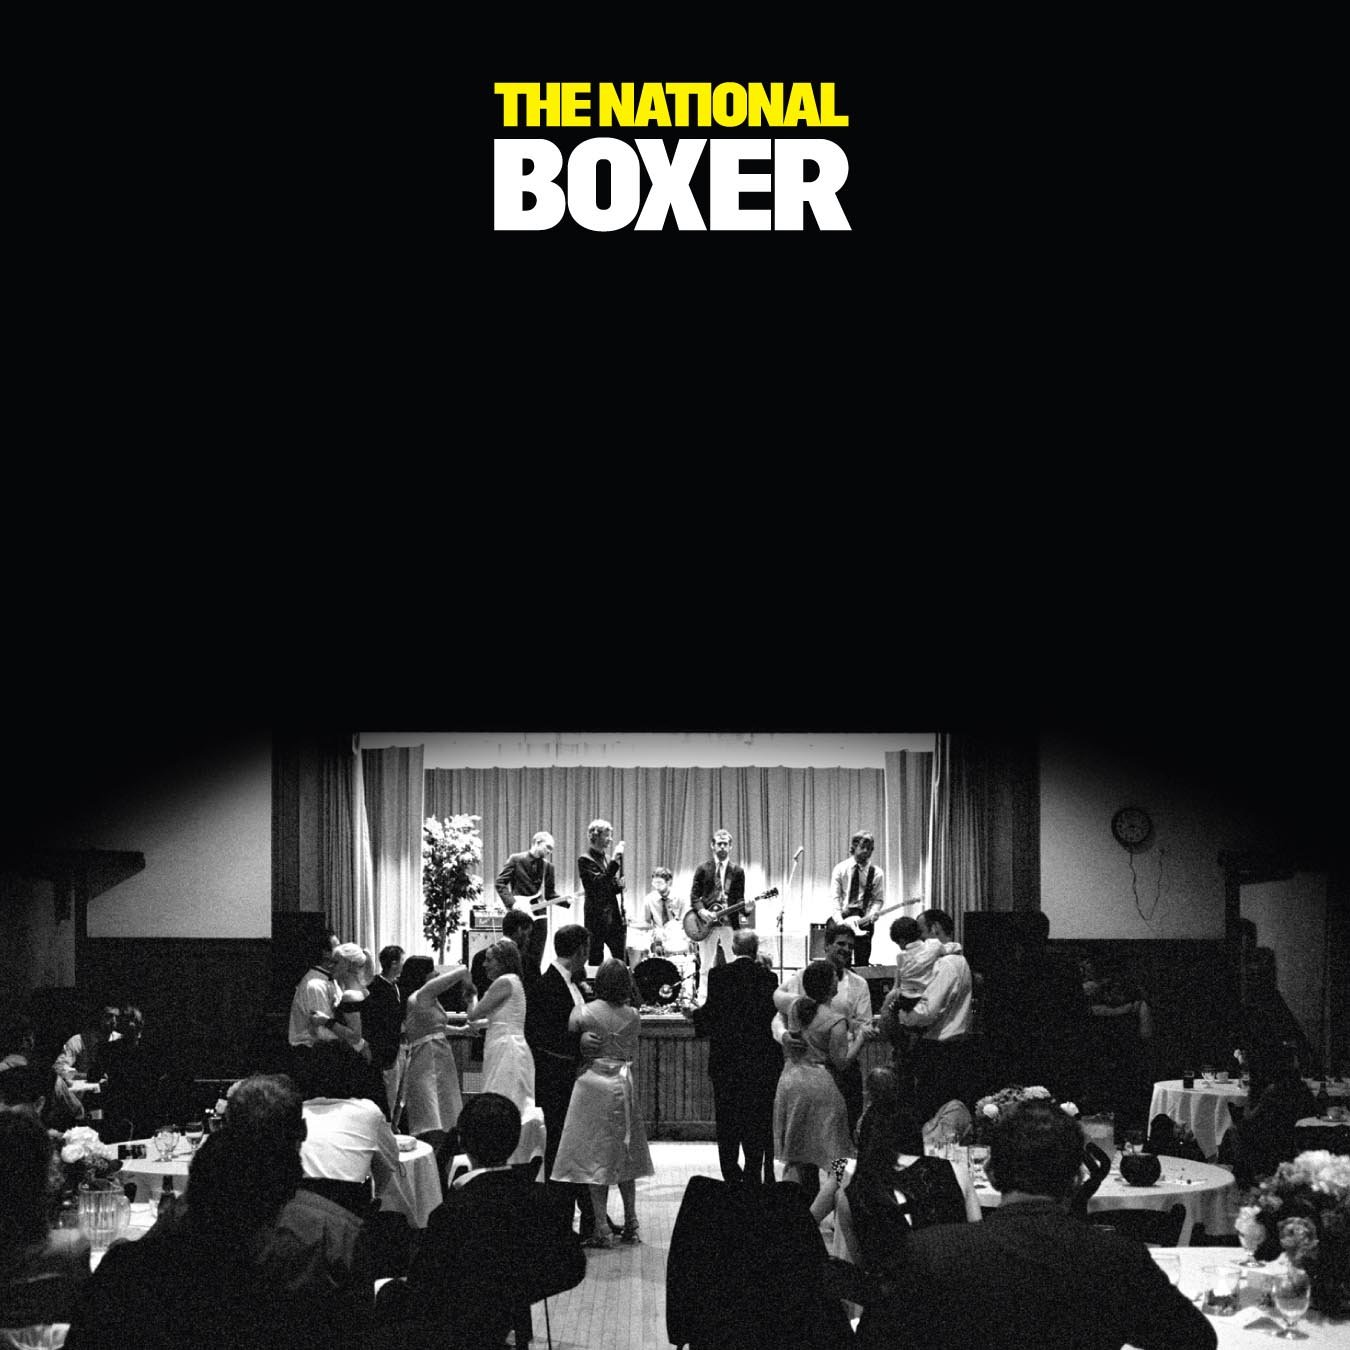 BOXER [Vinyl] by Beggars Banquet Us